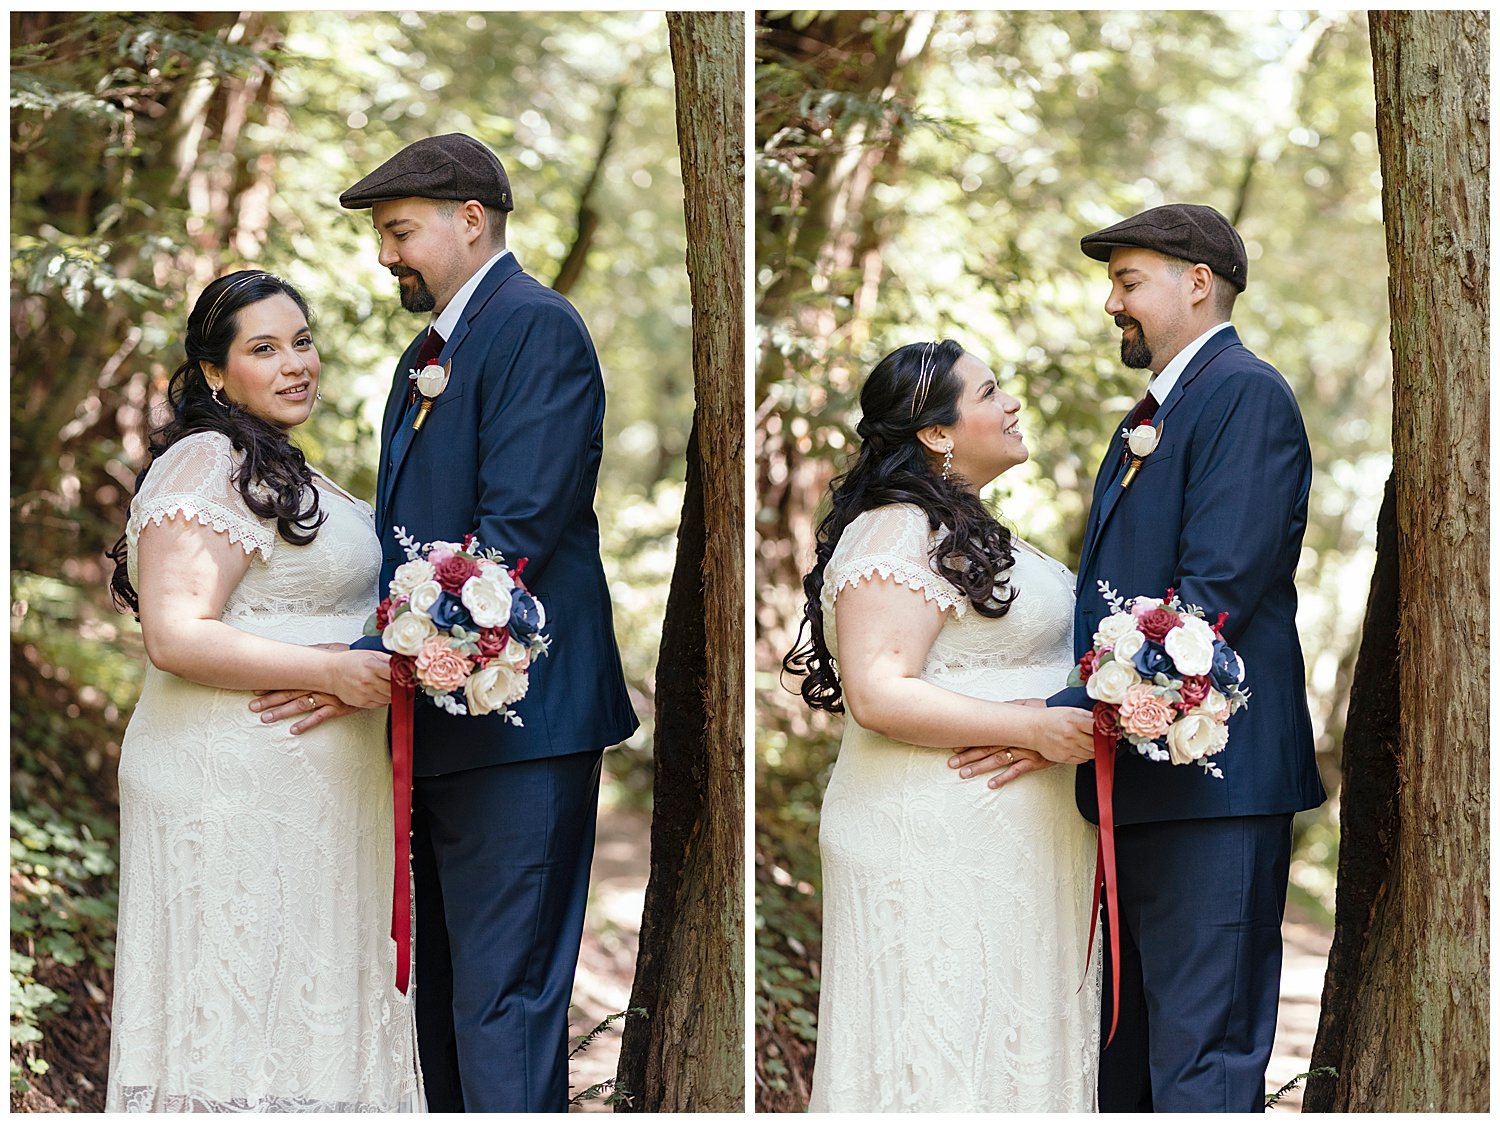 Bride and groom in the Henry Cowell redwoods after wedding